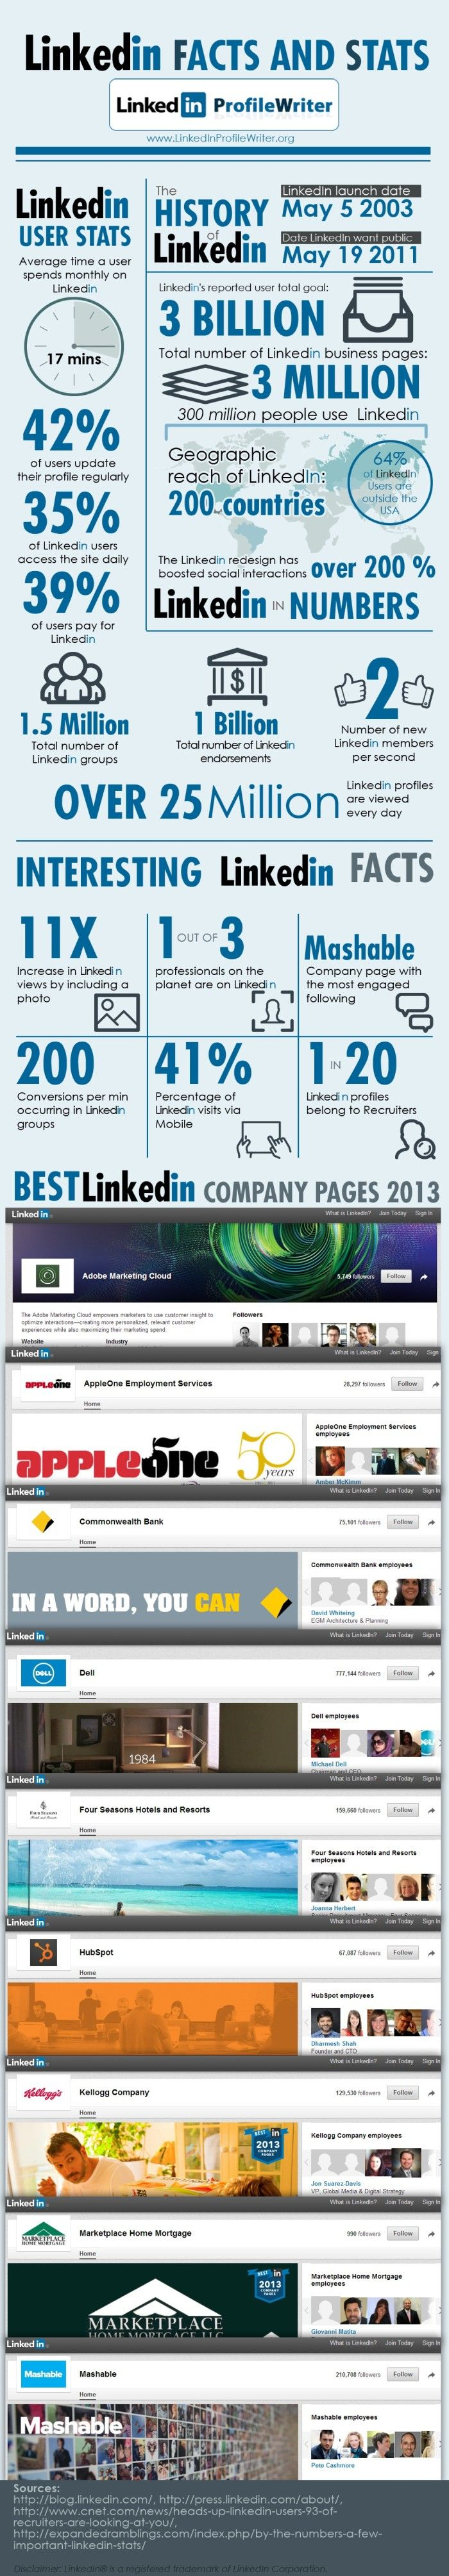 161 best linkedin marketing images on pinterest social media linkedin stats and facts malvernweather Image collections